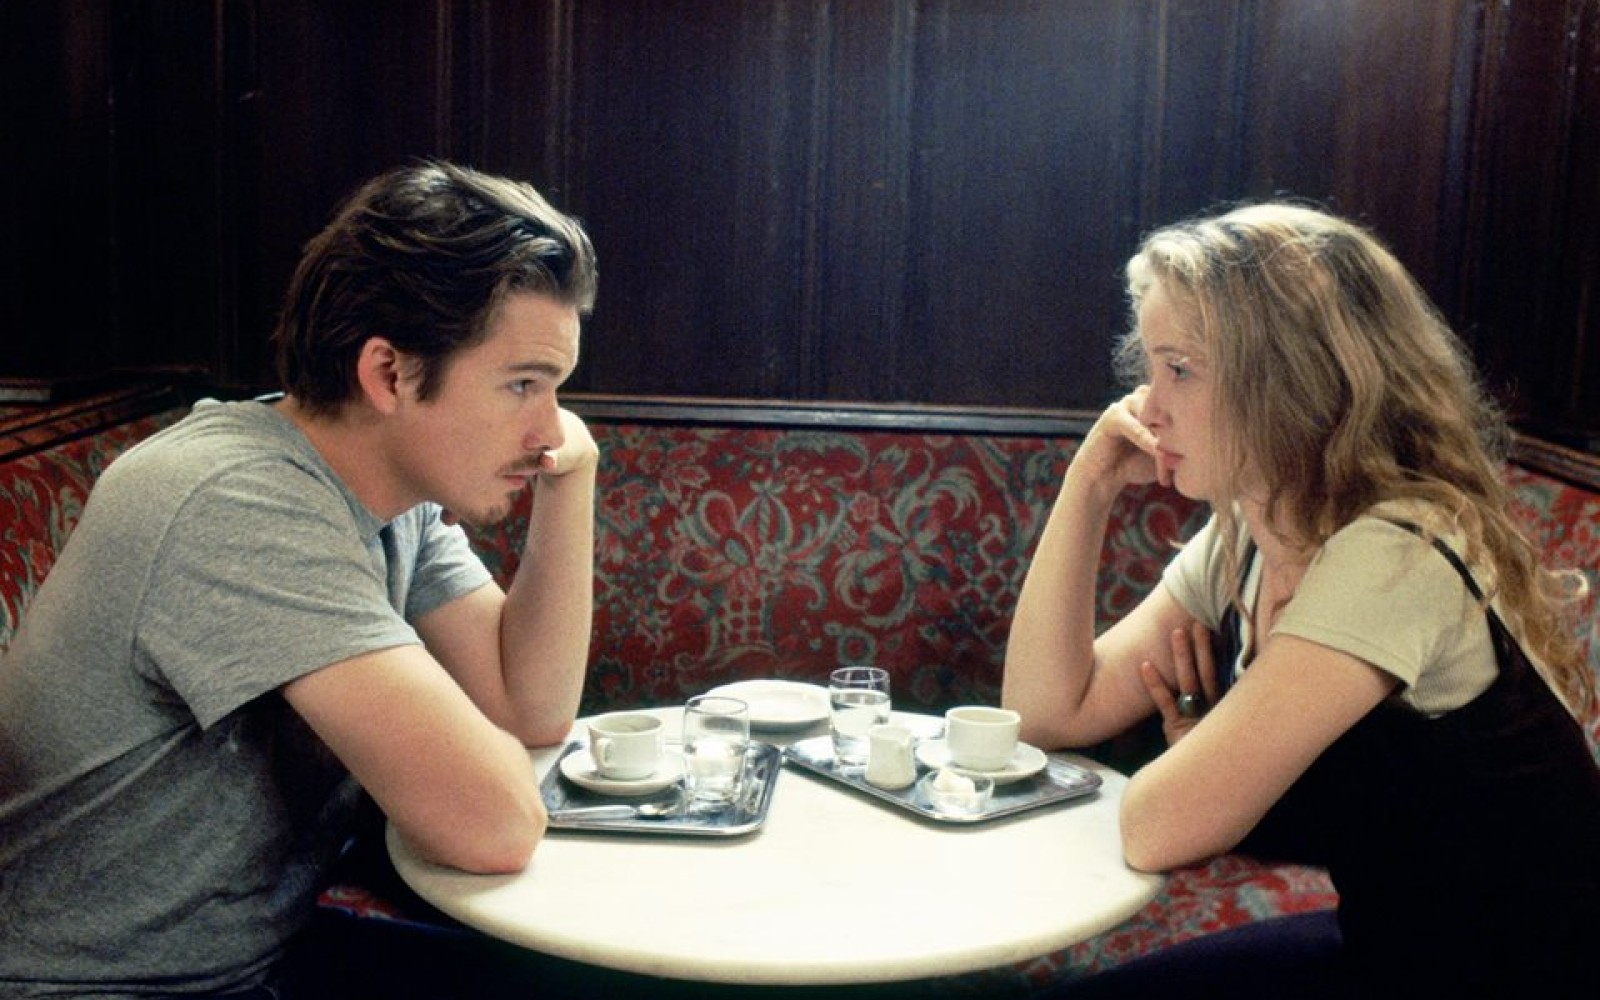 15 Heartwarming Quotes About Love And Life From 'Before Sunrise'